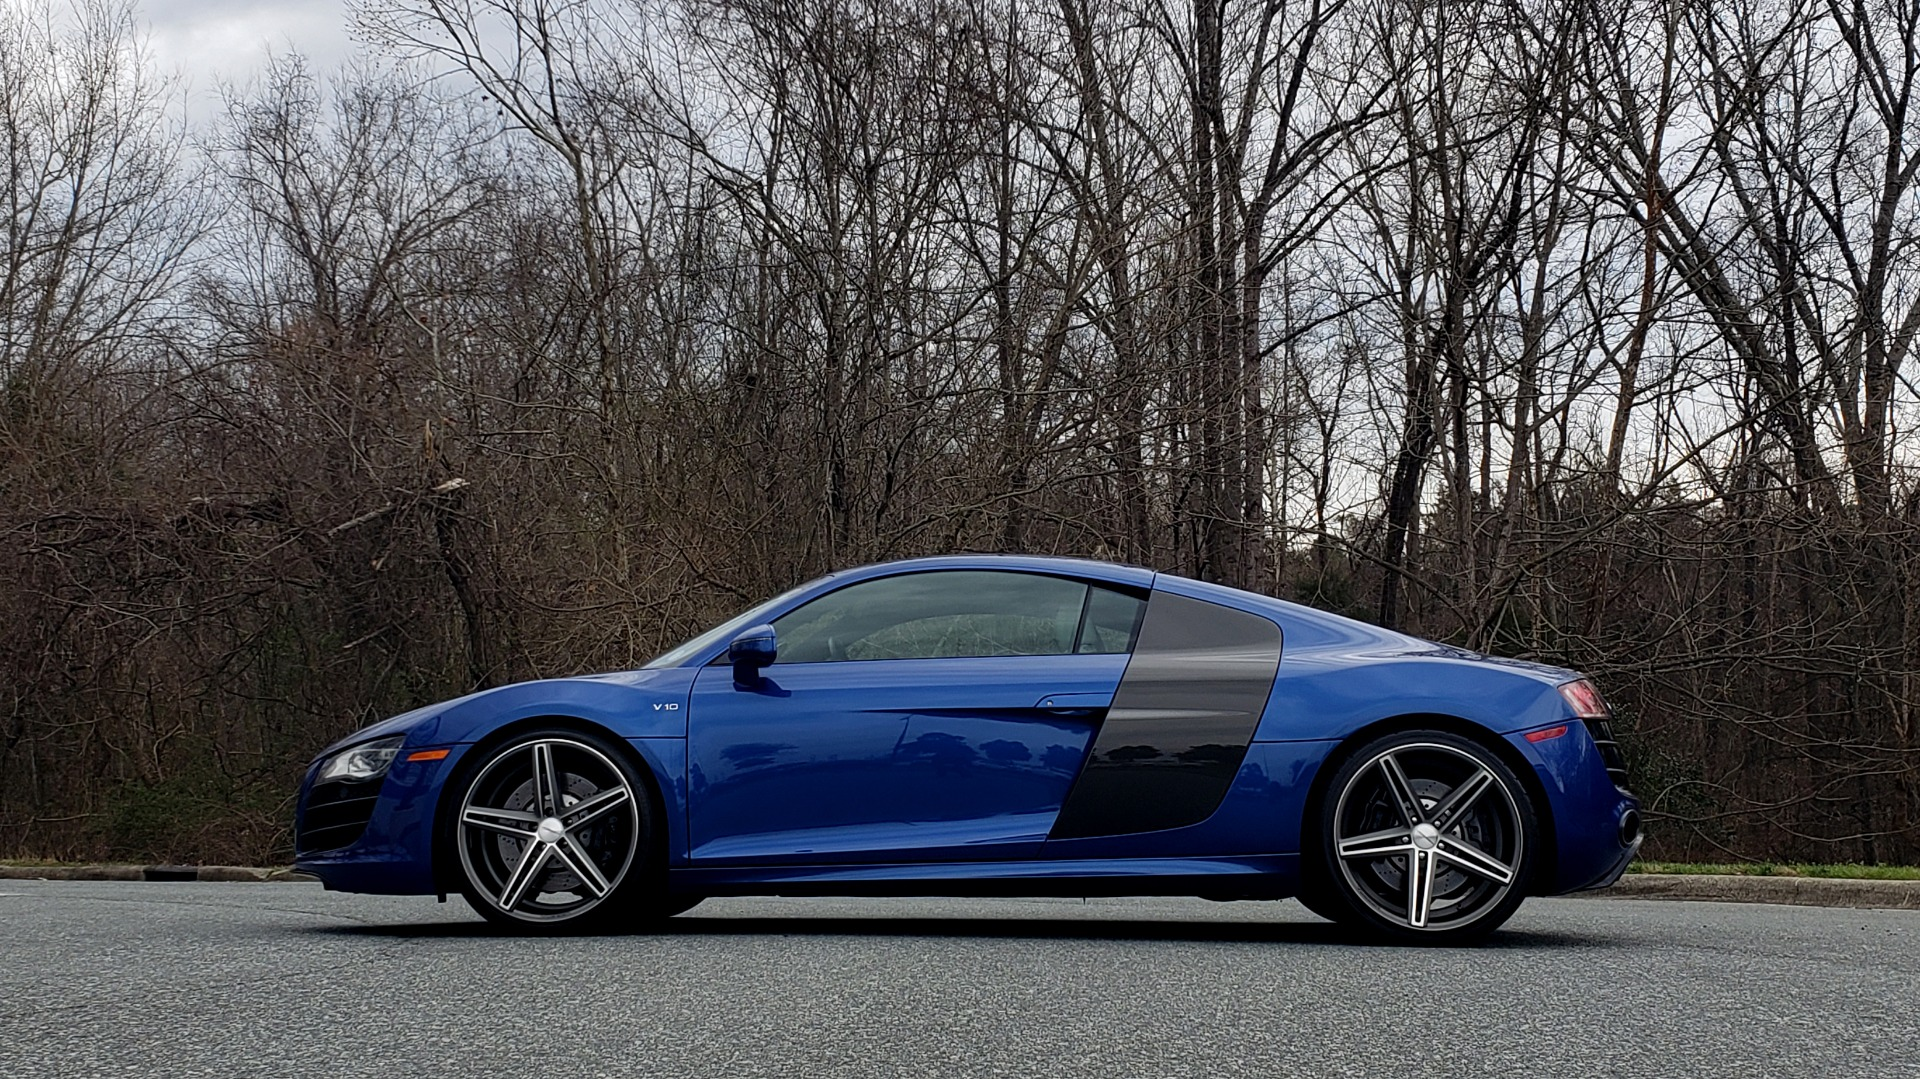 Used 2010 Audi R8 5.2L V10 / AWD / NAV / B&O SND / HTD STS / CUSTOM EXH & WHEELS for sale $78,000 at Formula Imports in Charlotte NC 28227 3